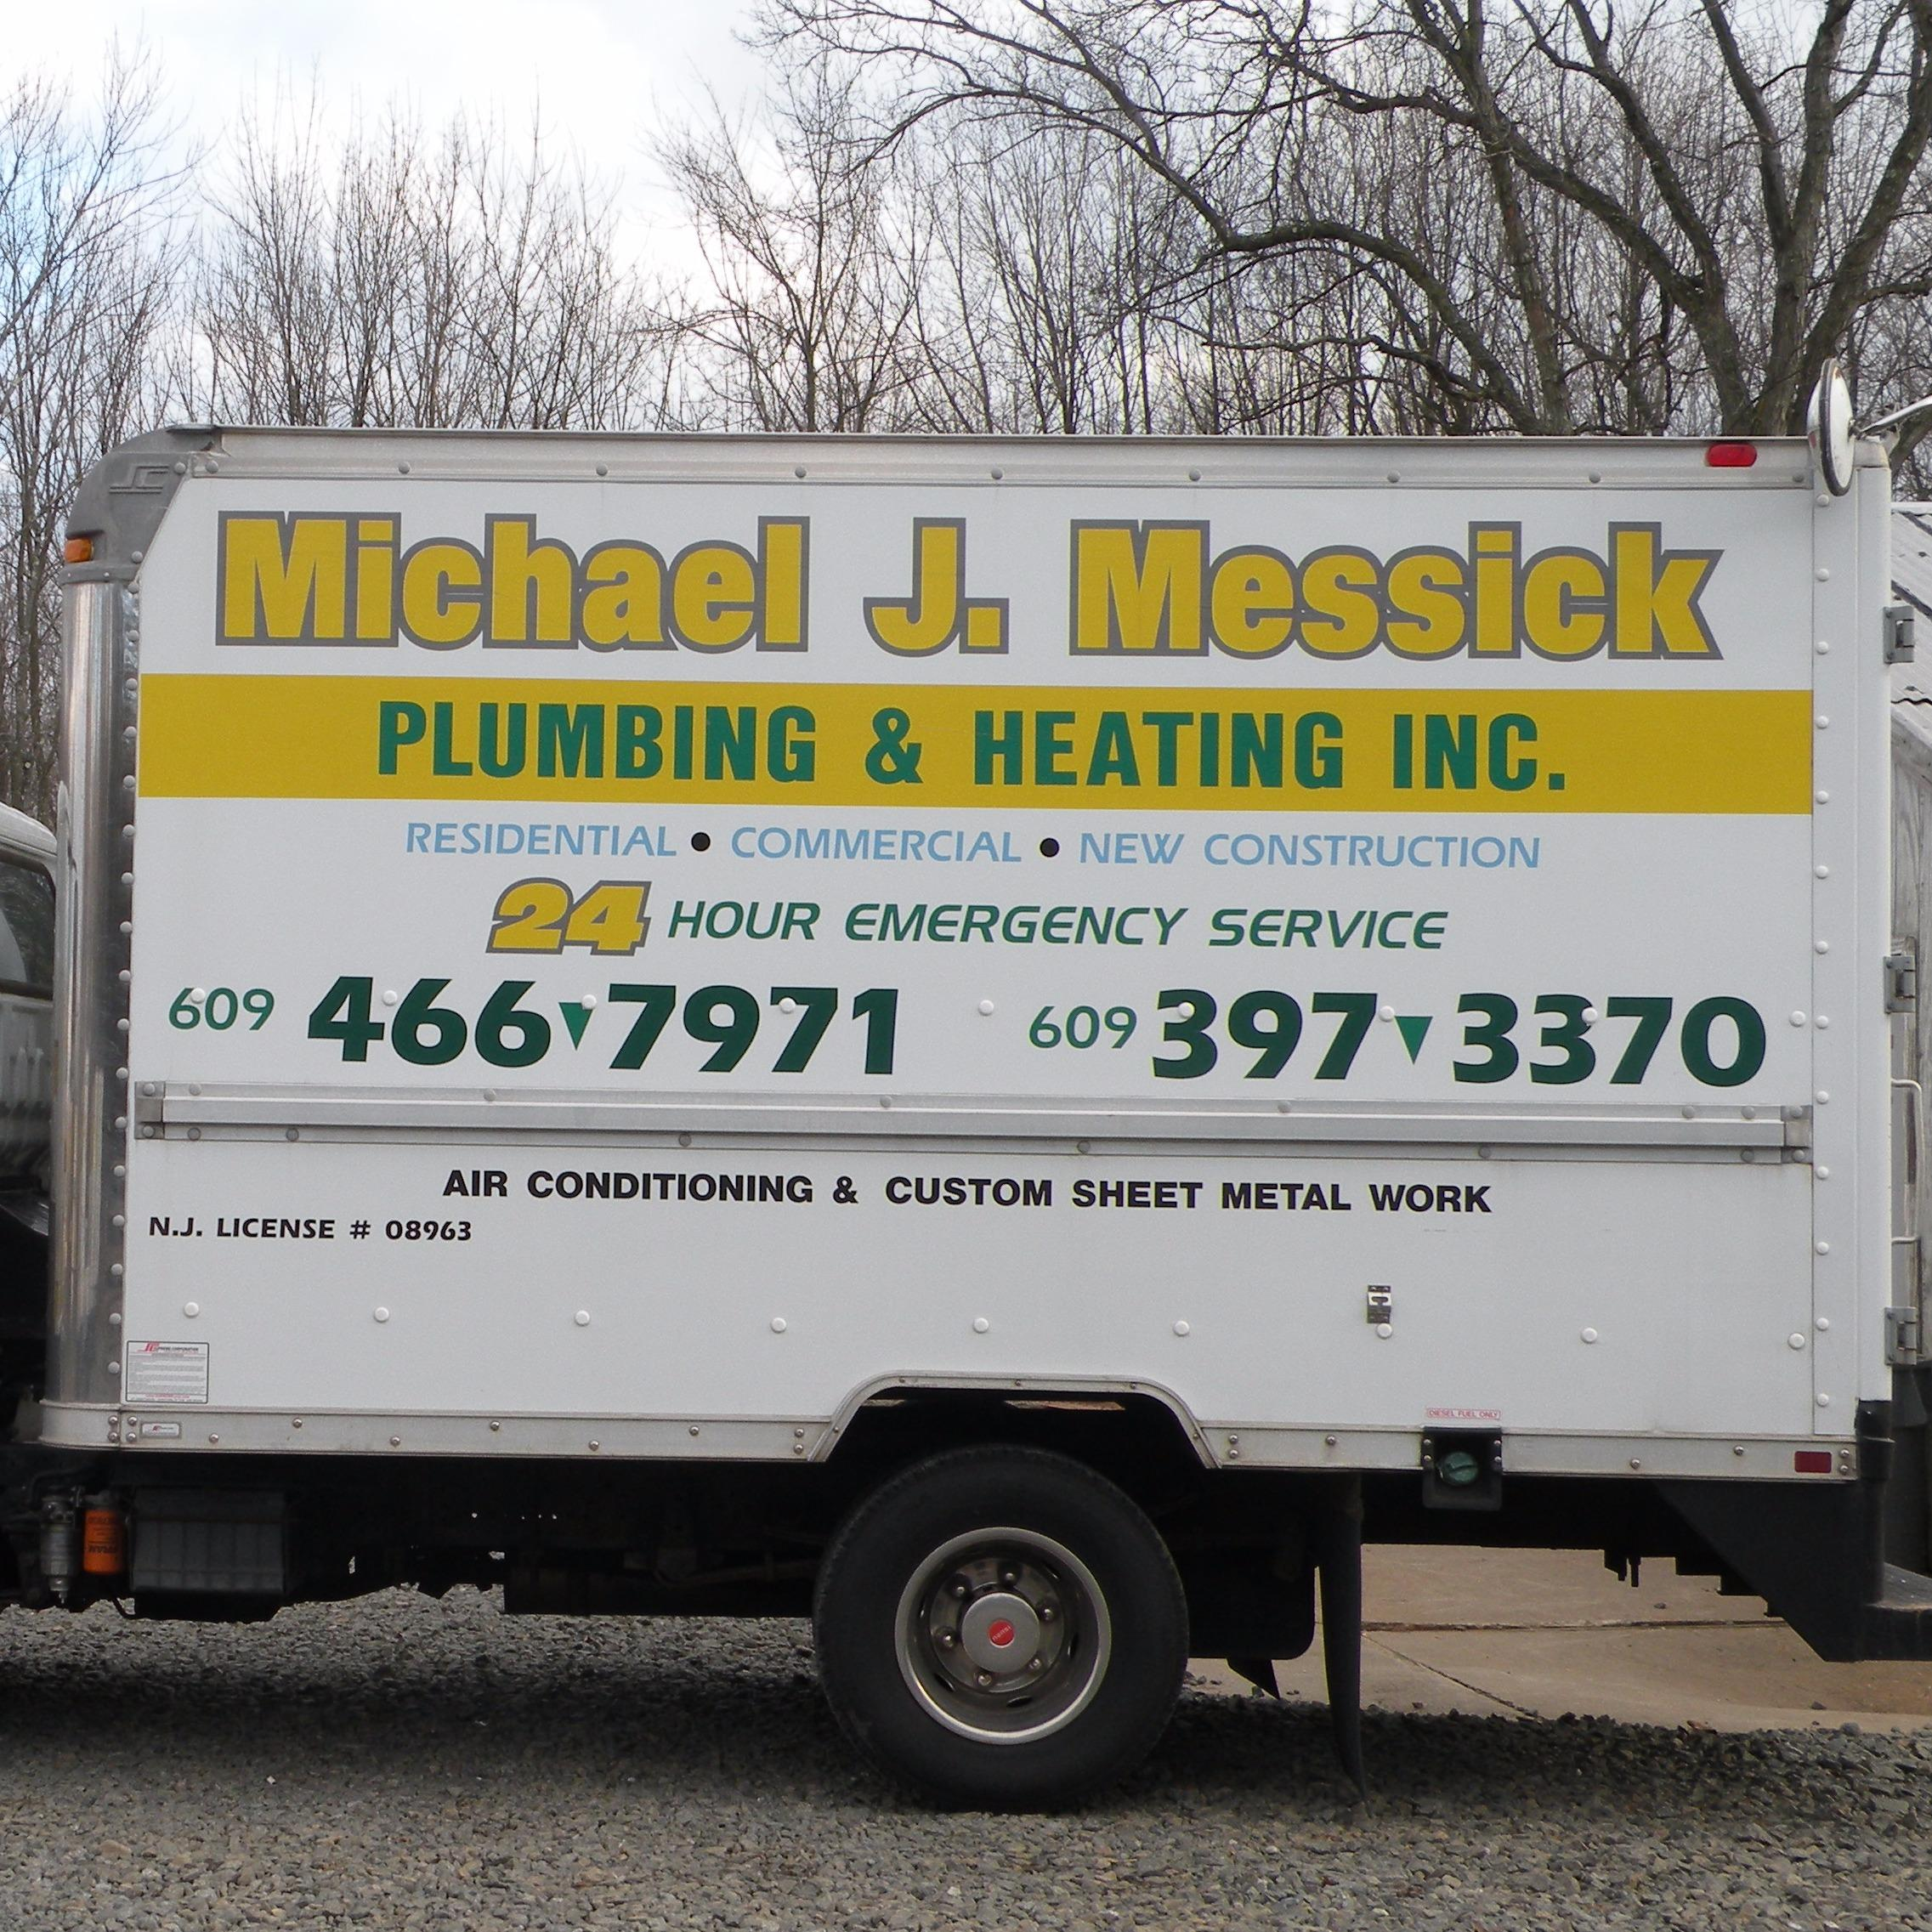 Michael J Messick Plumbing, Heating & Air